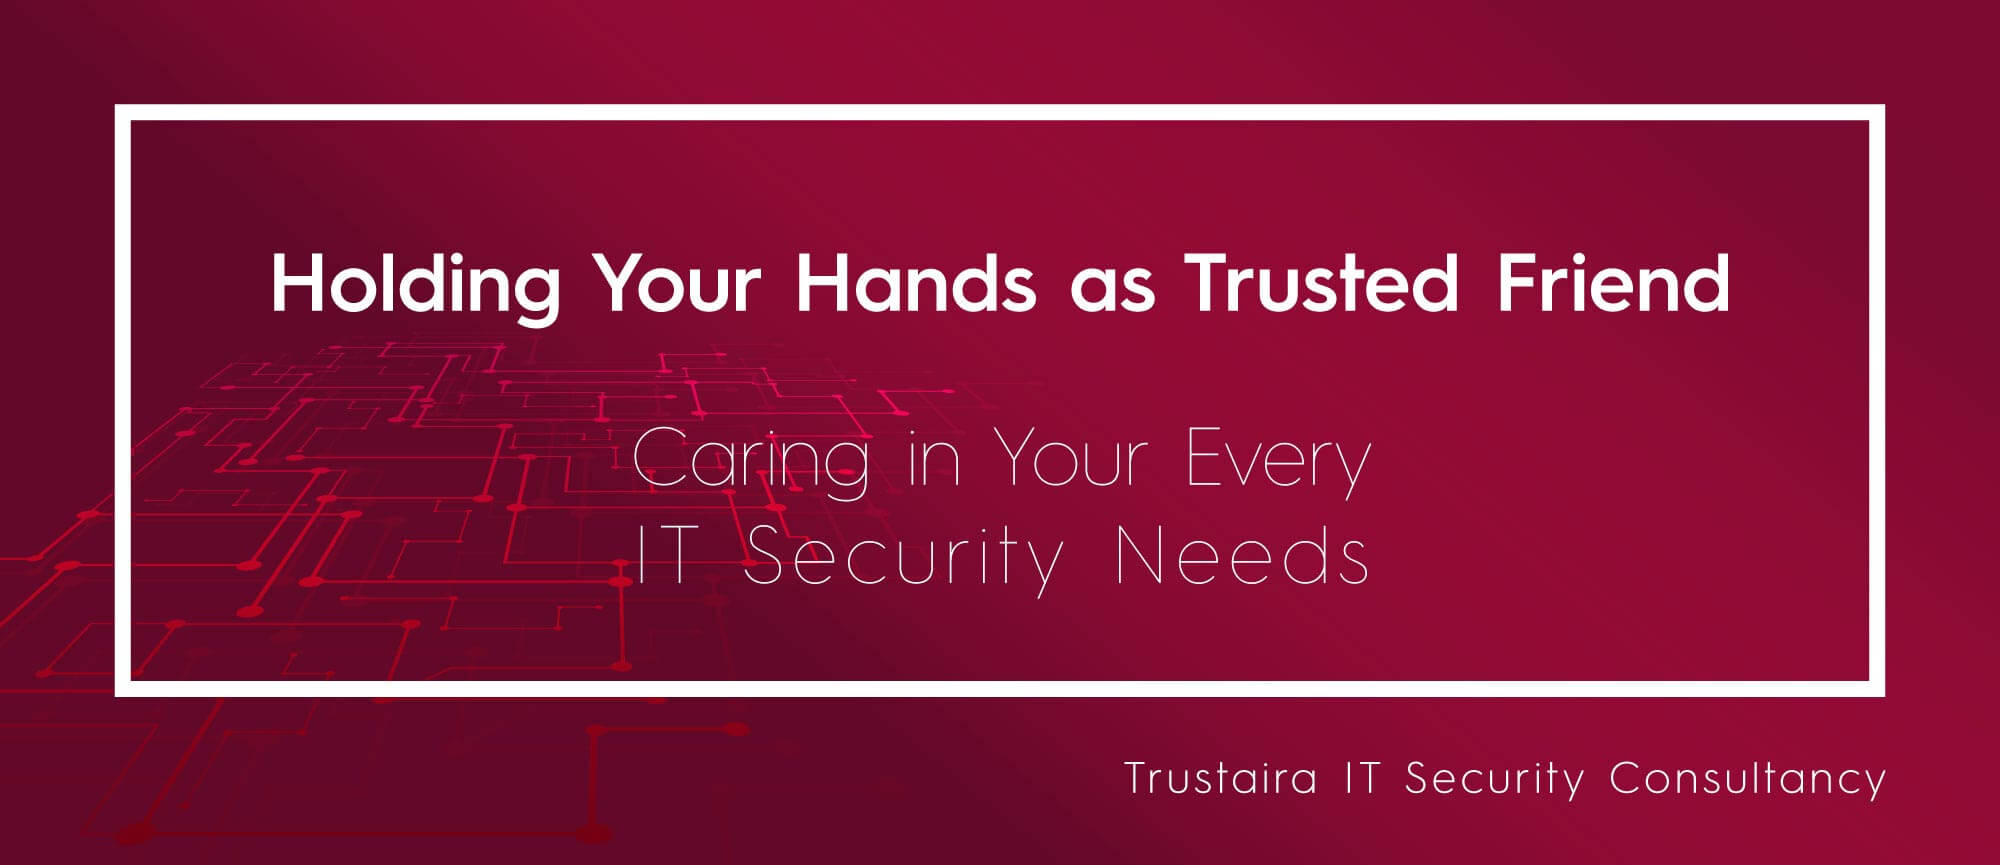 Trusted IT and Cyber Security Consultancy & Advisory Partner for Every Need